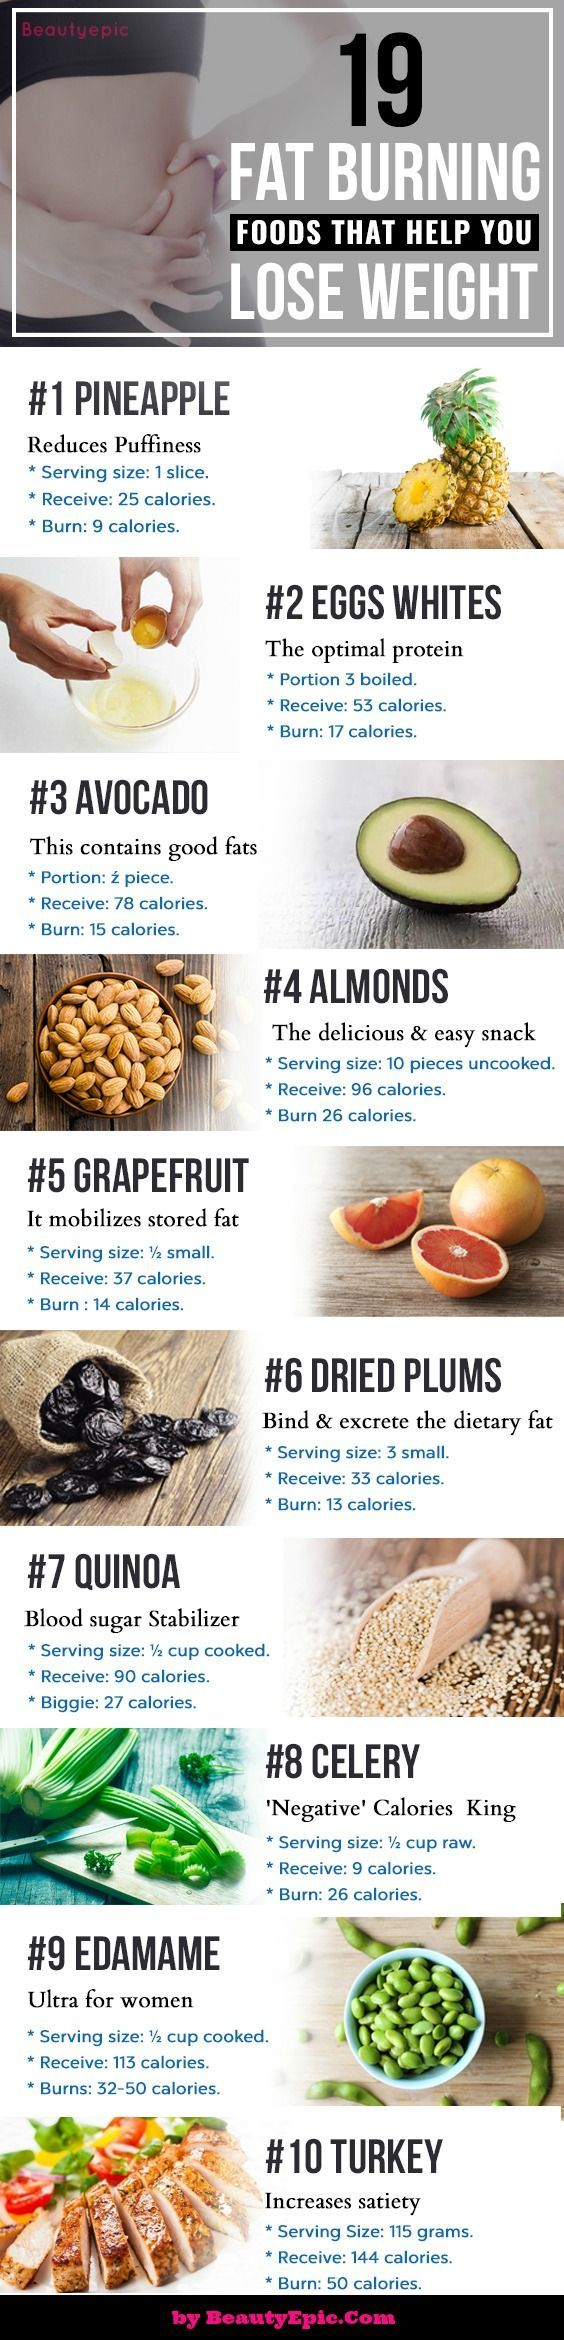 19 Super Foods That Burn Fat & Help You Lose Weight - Beauty Epic